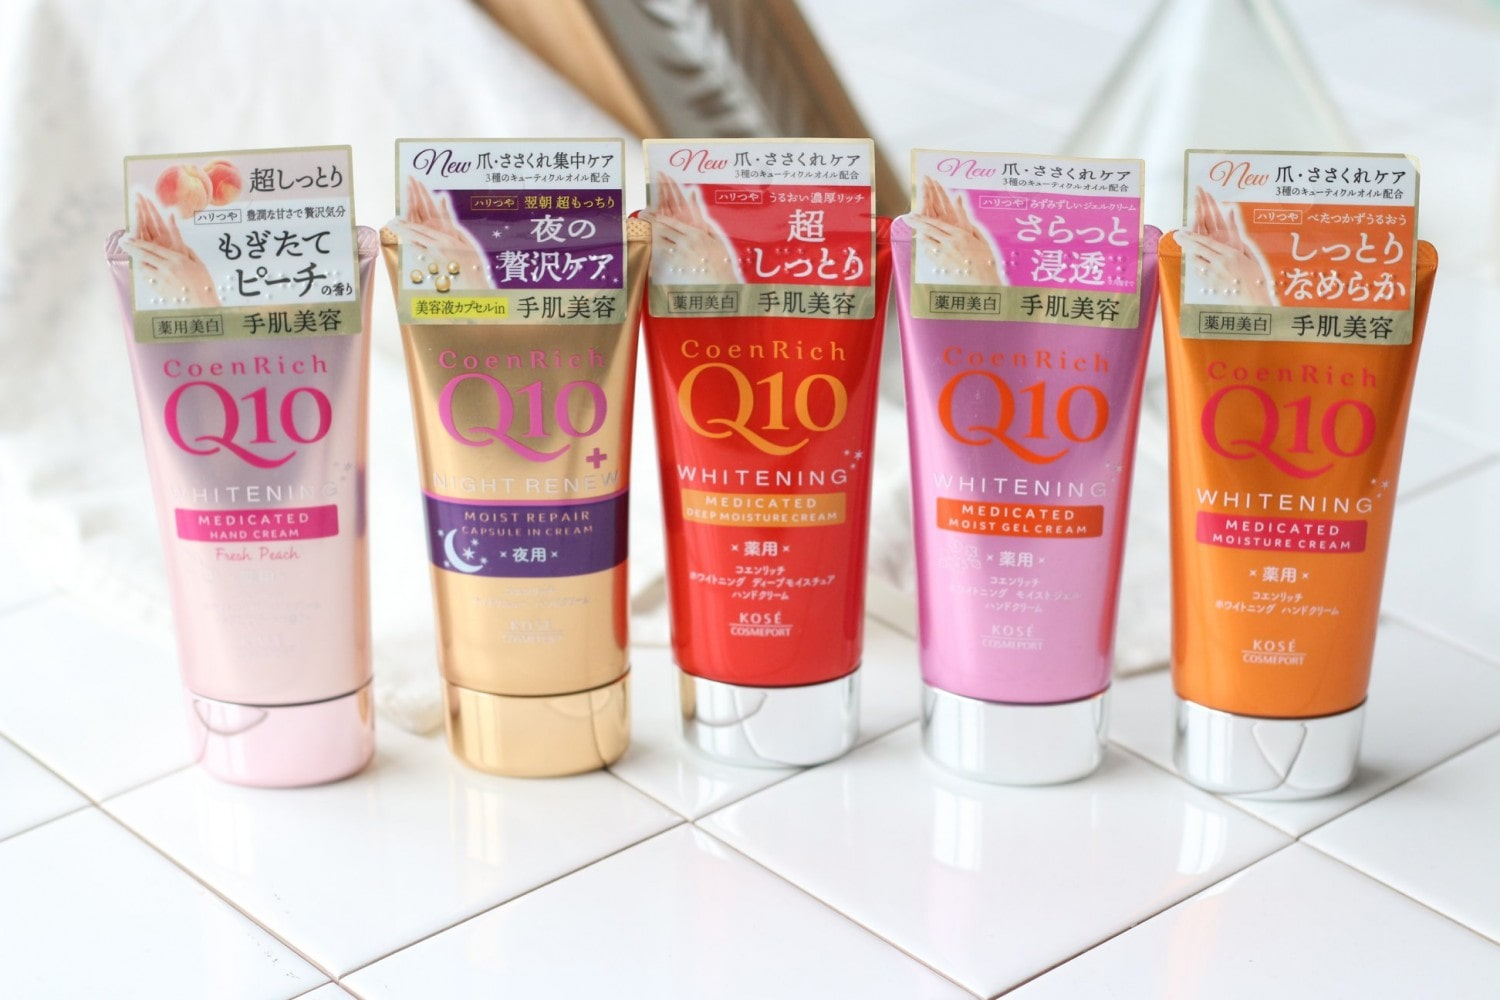 Kose Q10 Whitening Medicated hand cream